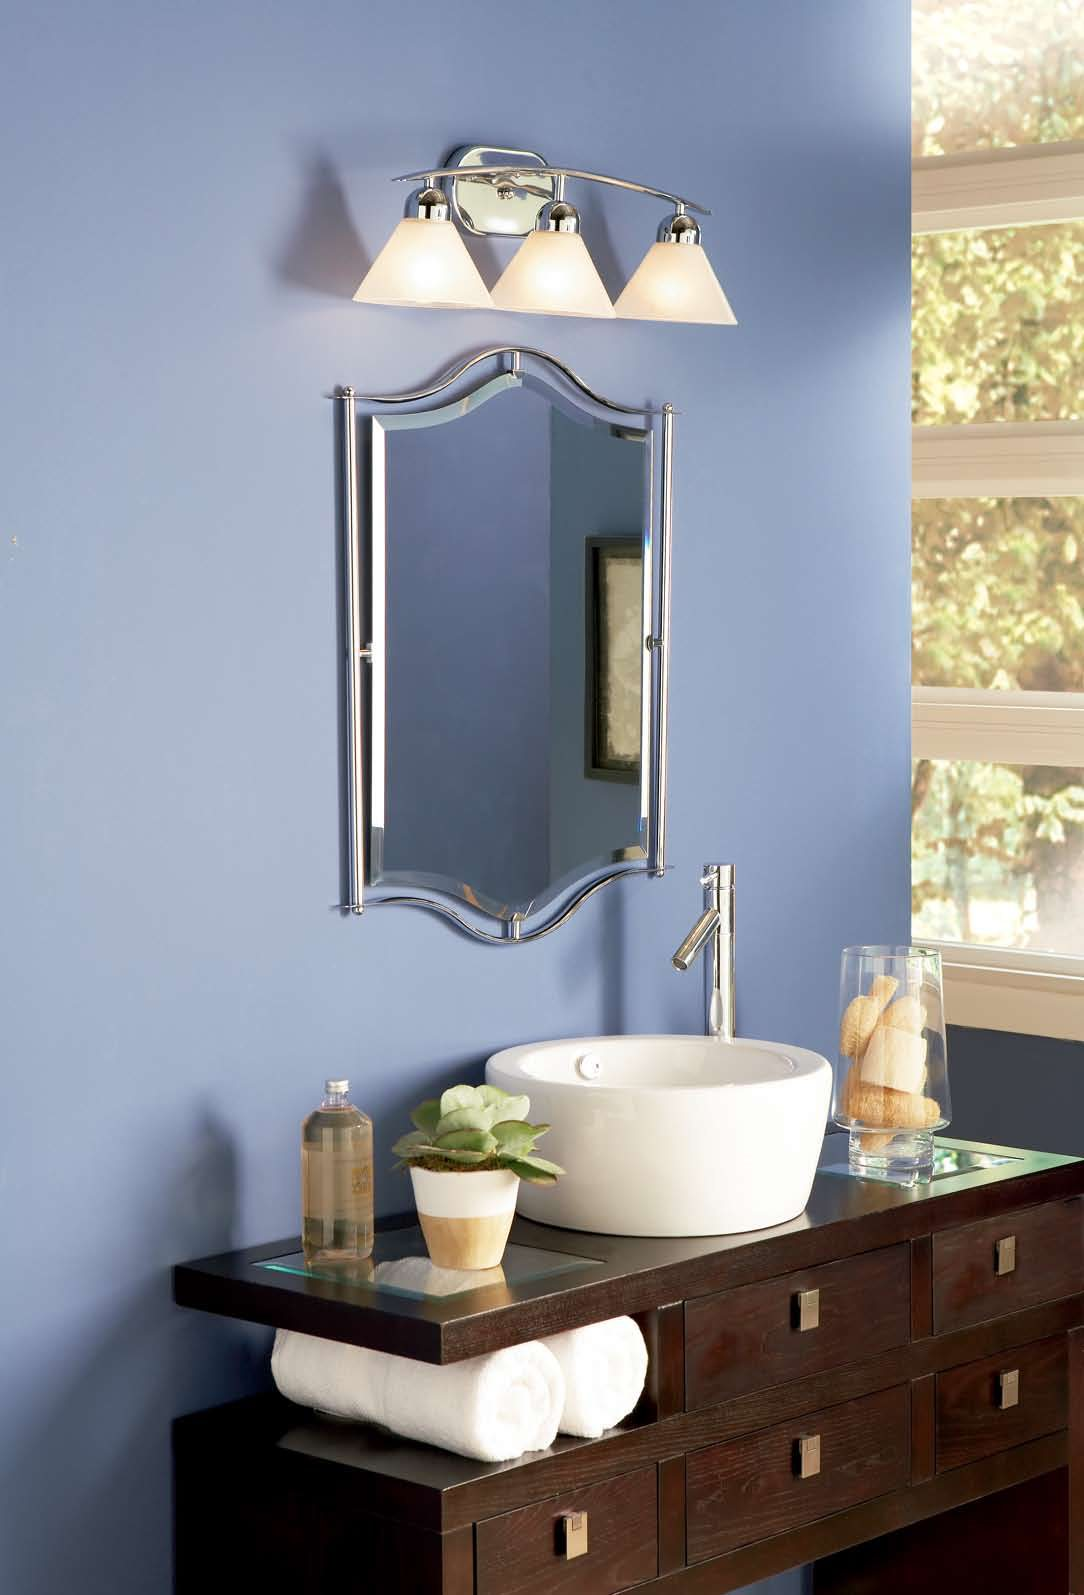 Quoizel di8503c demitri modern contemporary bathroom for Modern bathroom vanity light fixtures